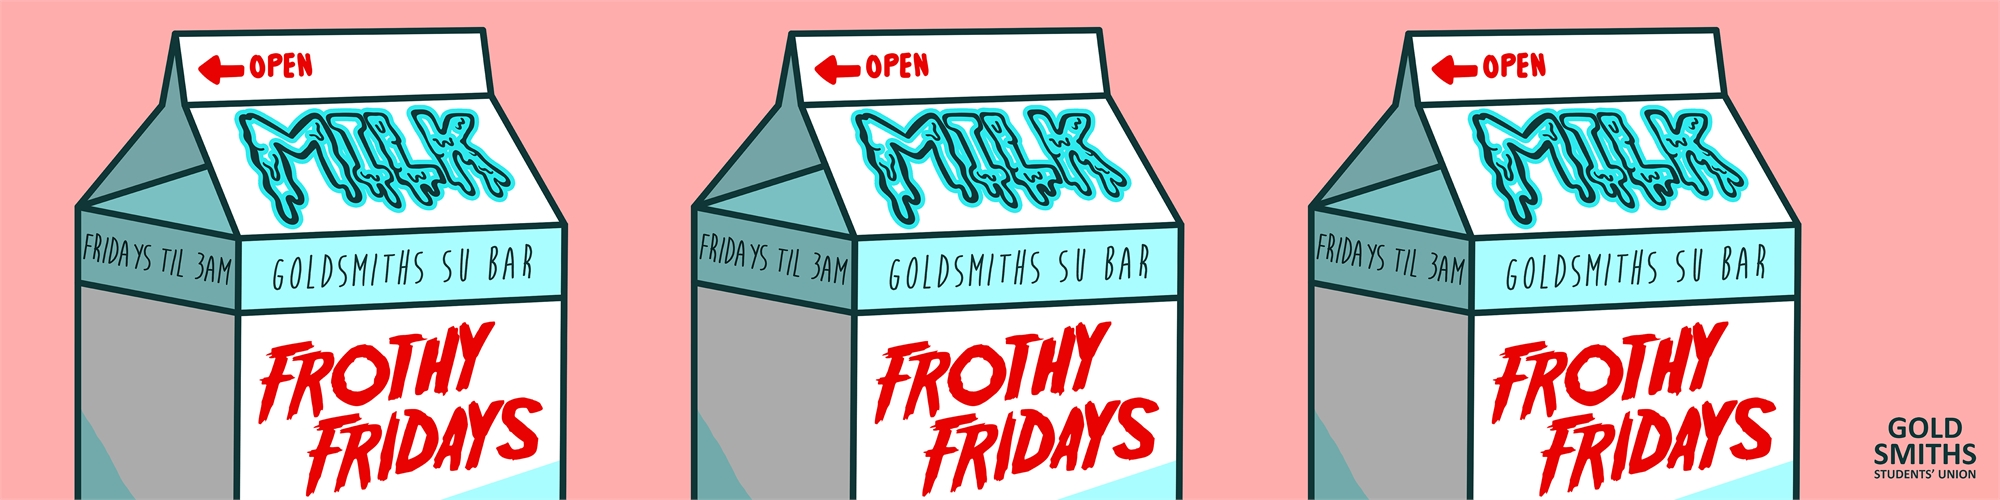 Frothy Fridays